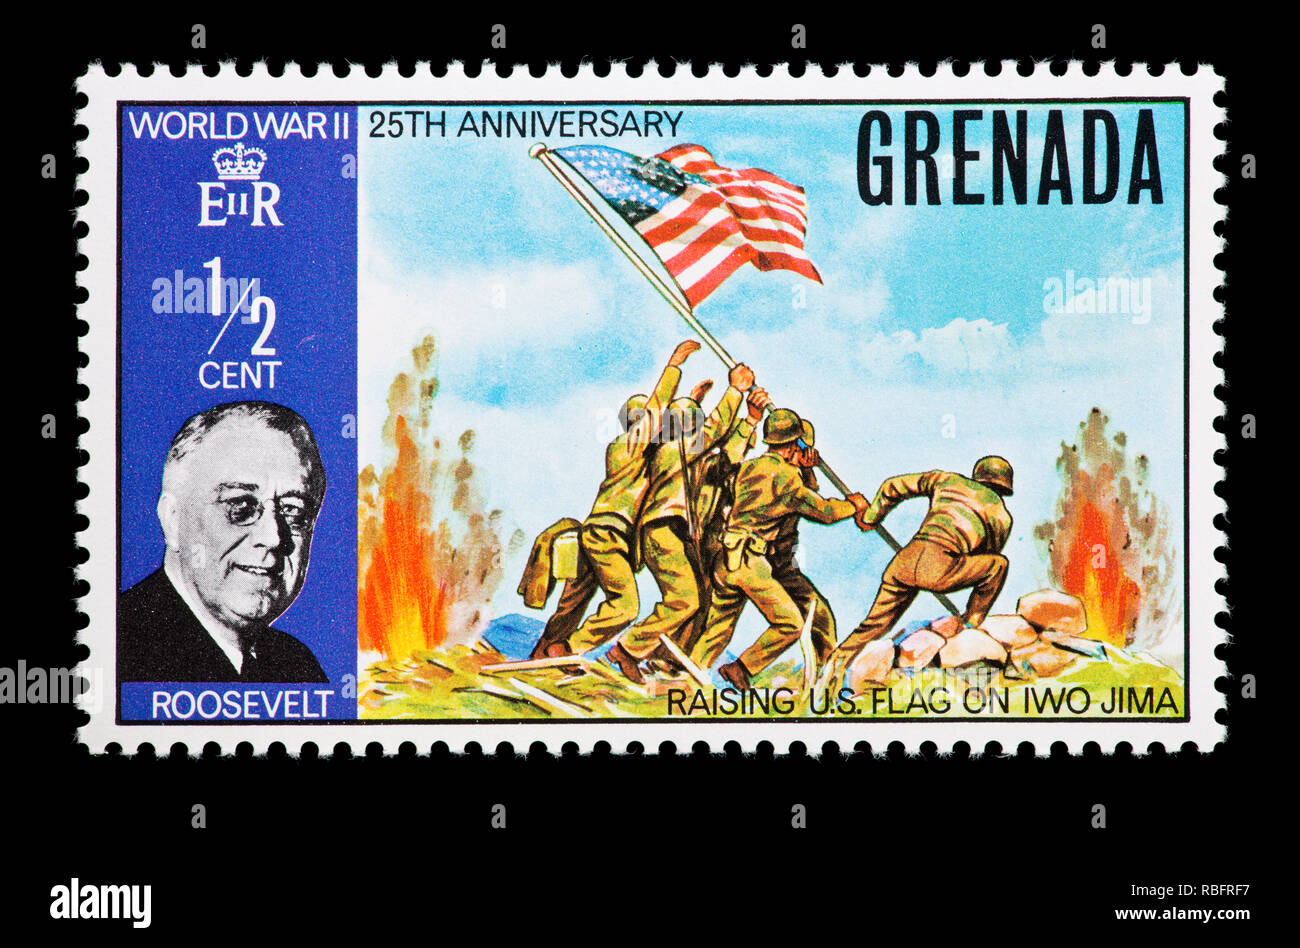 fa2896a17702 Postage stamp from Grenada depicting of the raising of the American flag at  Iwo Jima